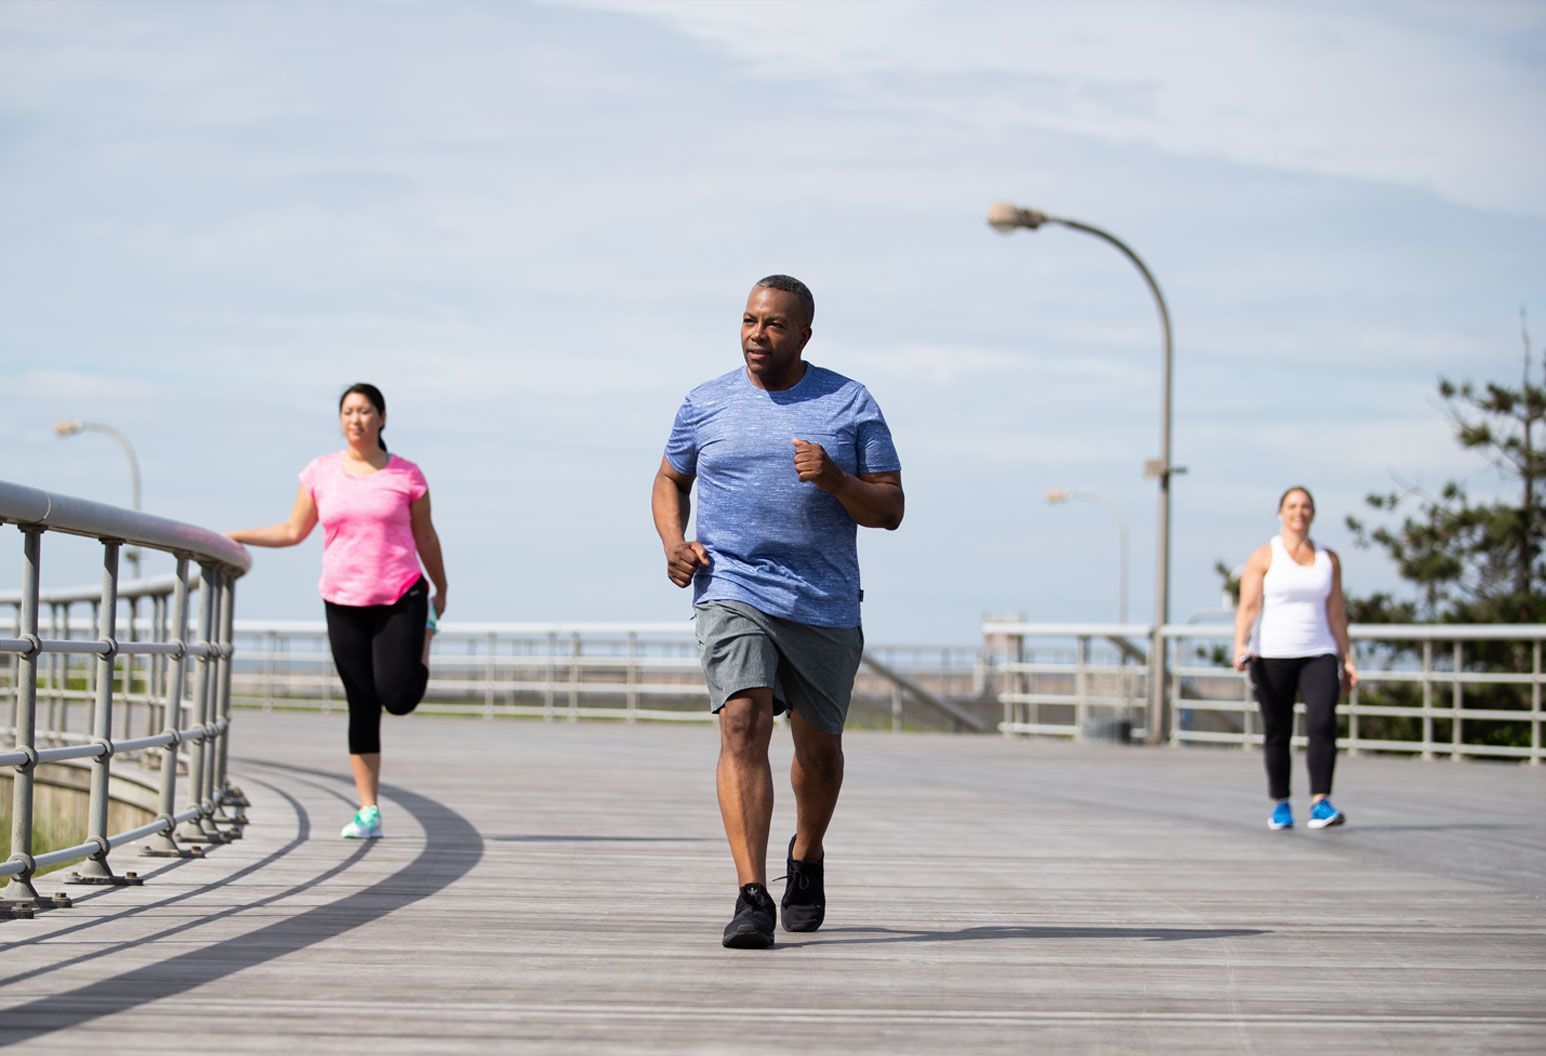 A middle aged man jogs on the beach boardwalk. There are two women out of focus behind him. One is walking and the other is stretching her leg. It's a bright, clear day.